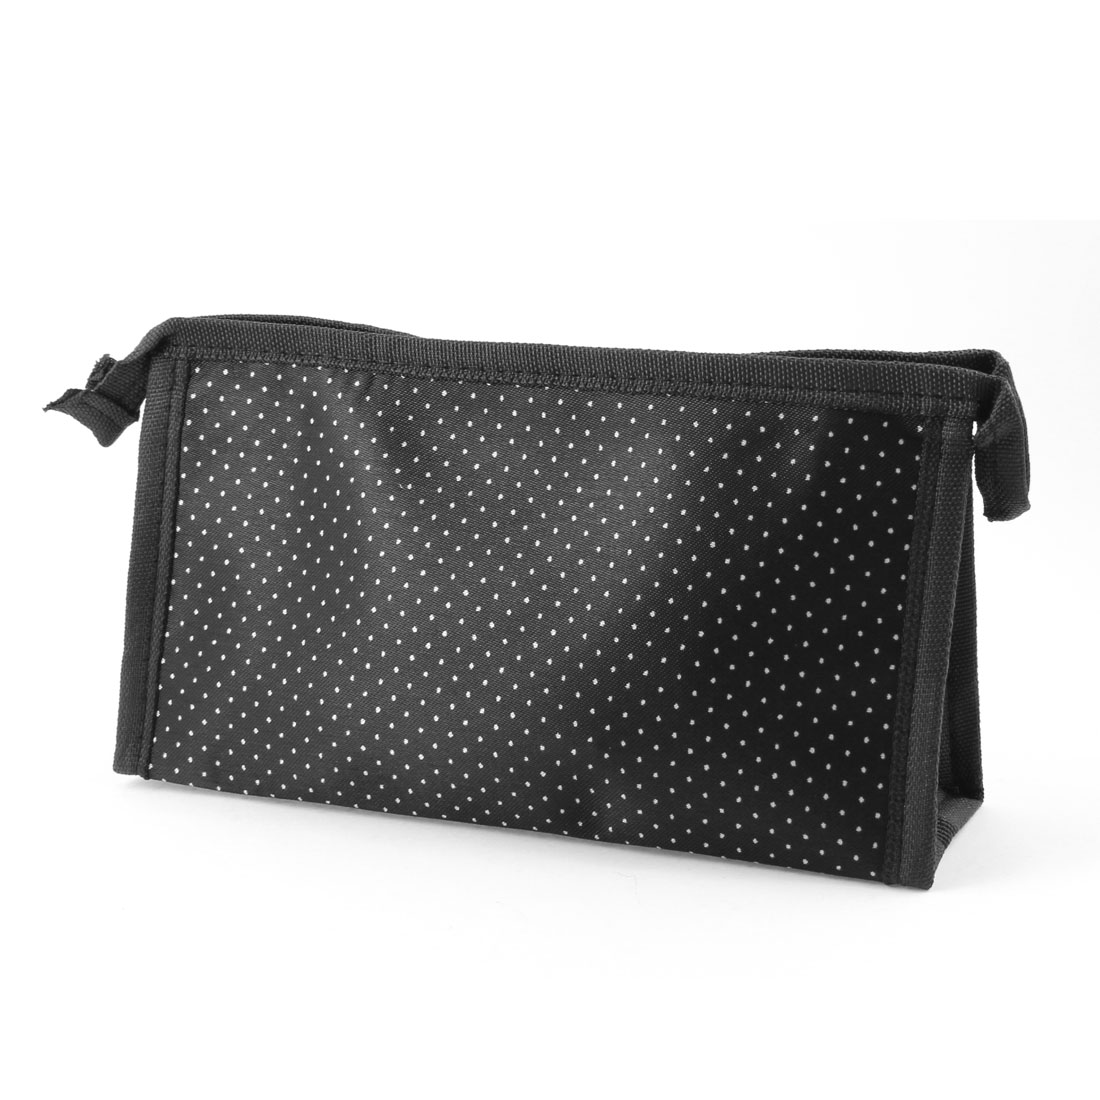 Women Zipper Closure Dots Pattern Cosmetic Makeup Pouch Bag Black White